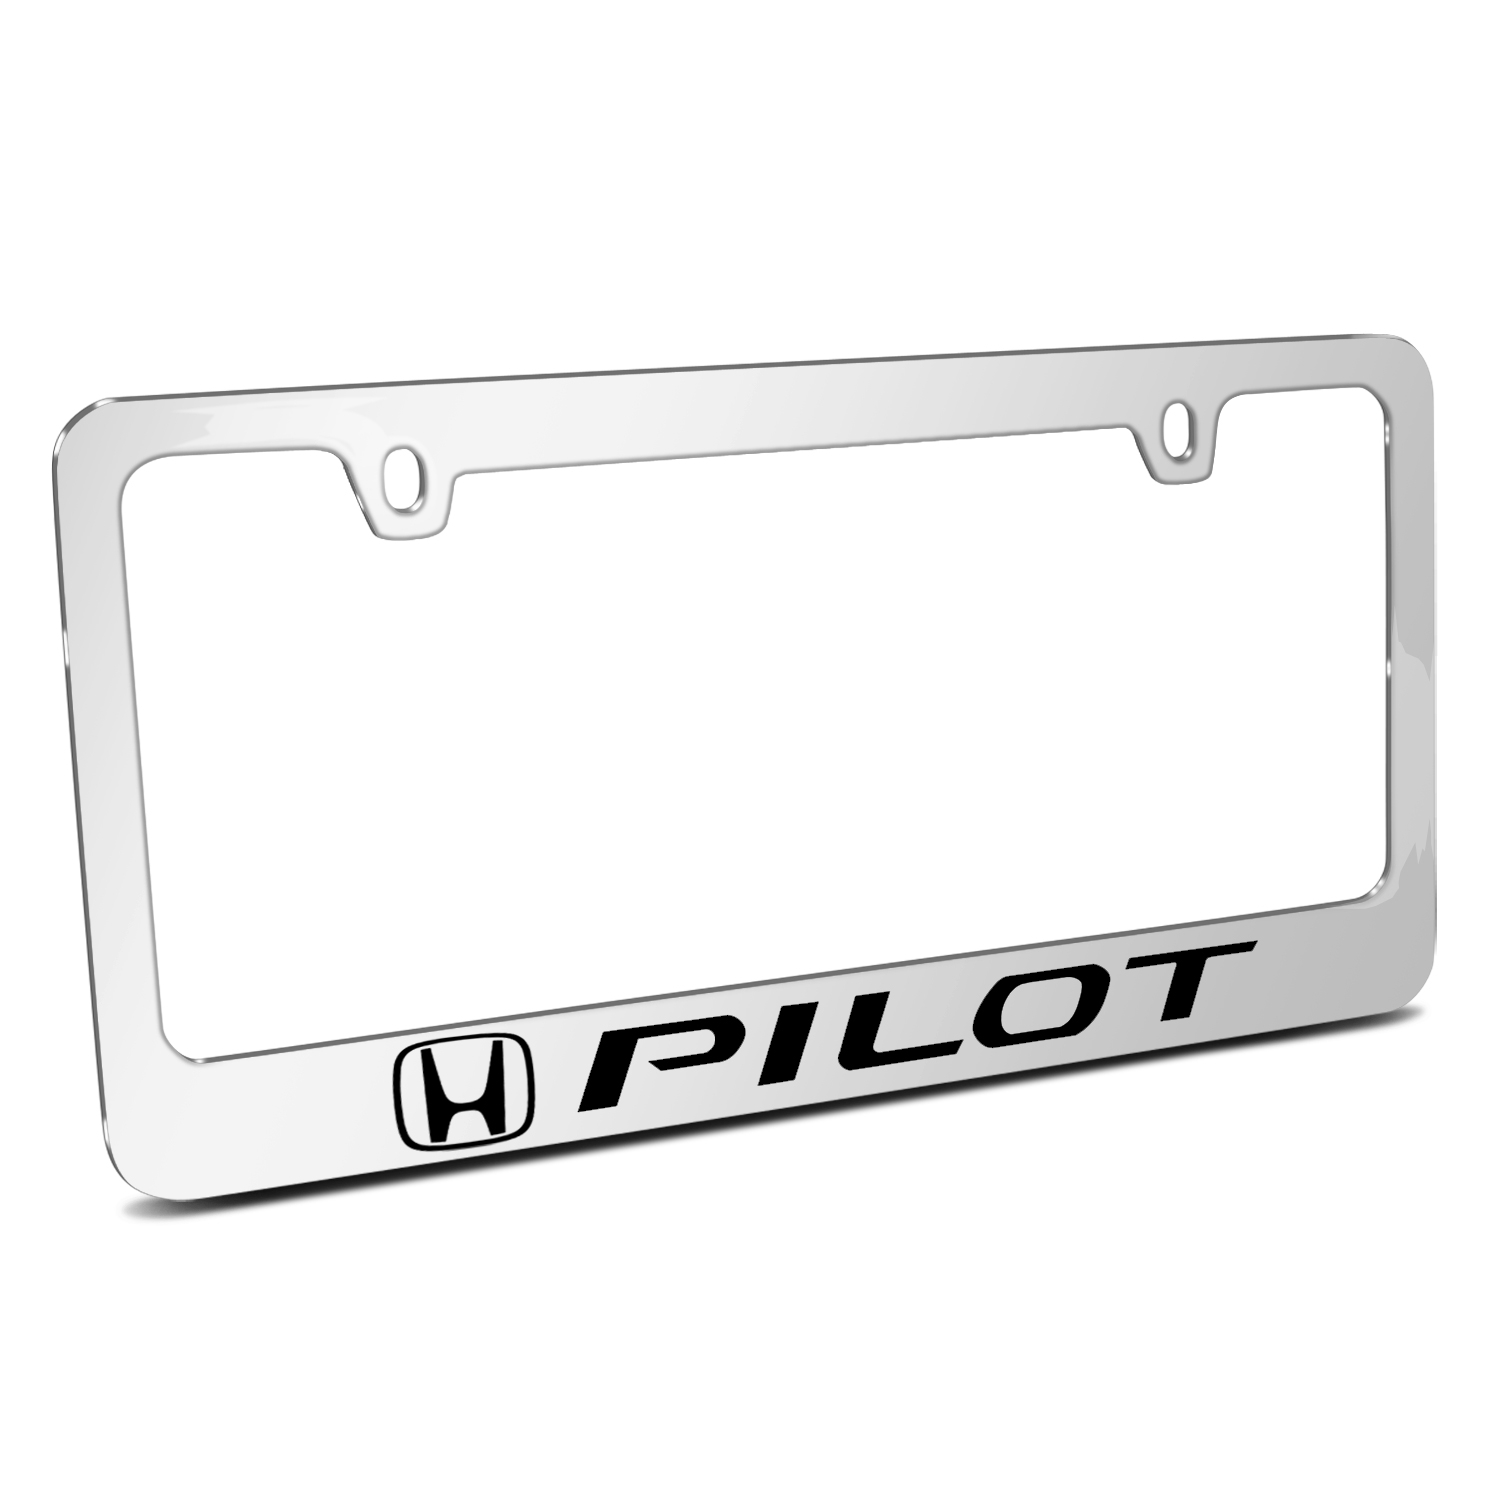 Honda Pilot Mirror Chrome Metal License Plate Frame